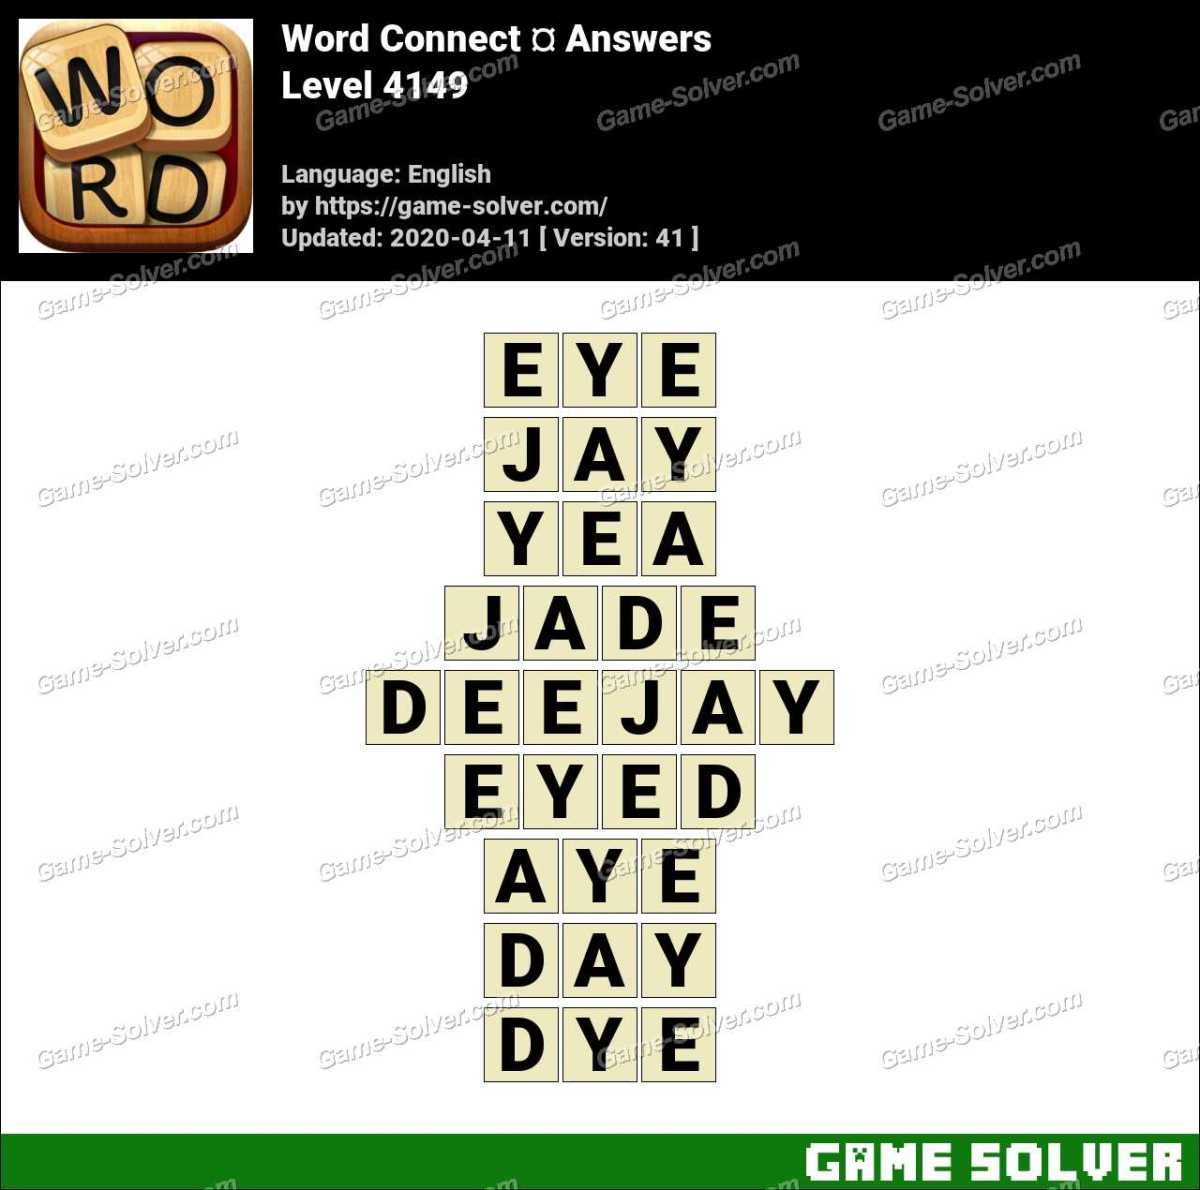 Word Connect Level 4149 Answers